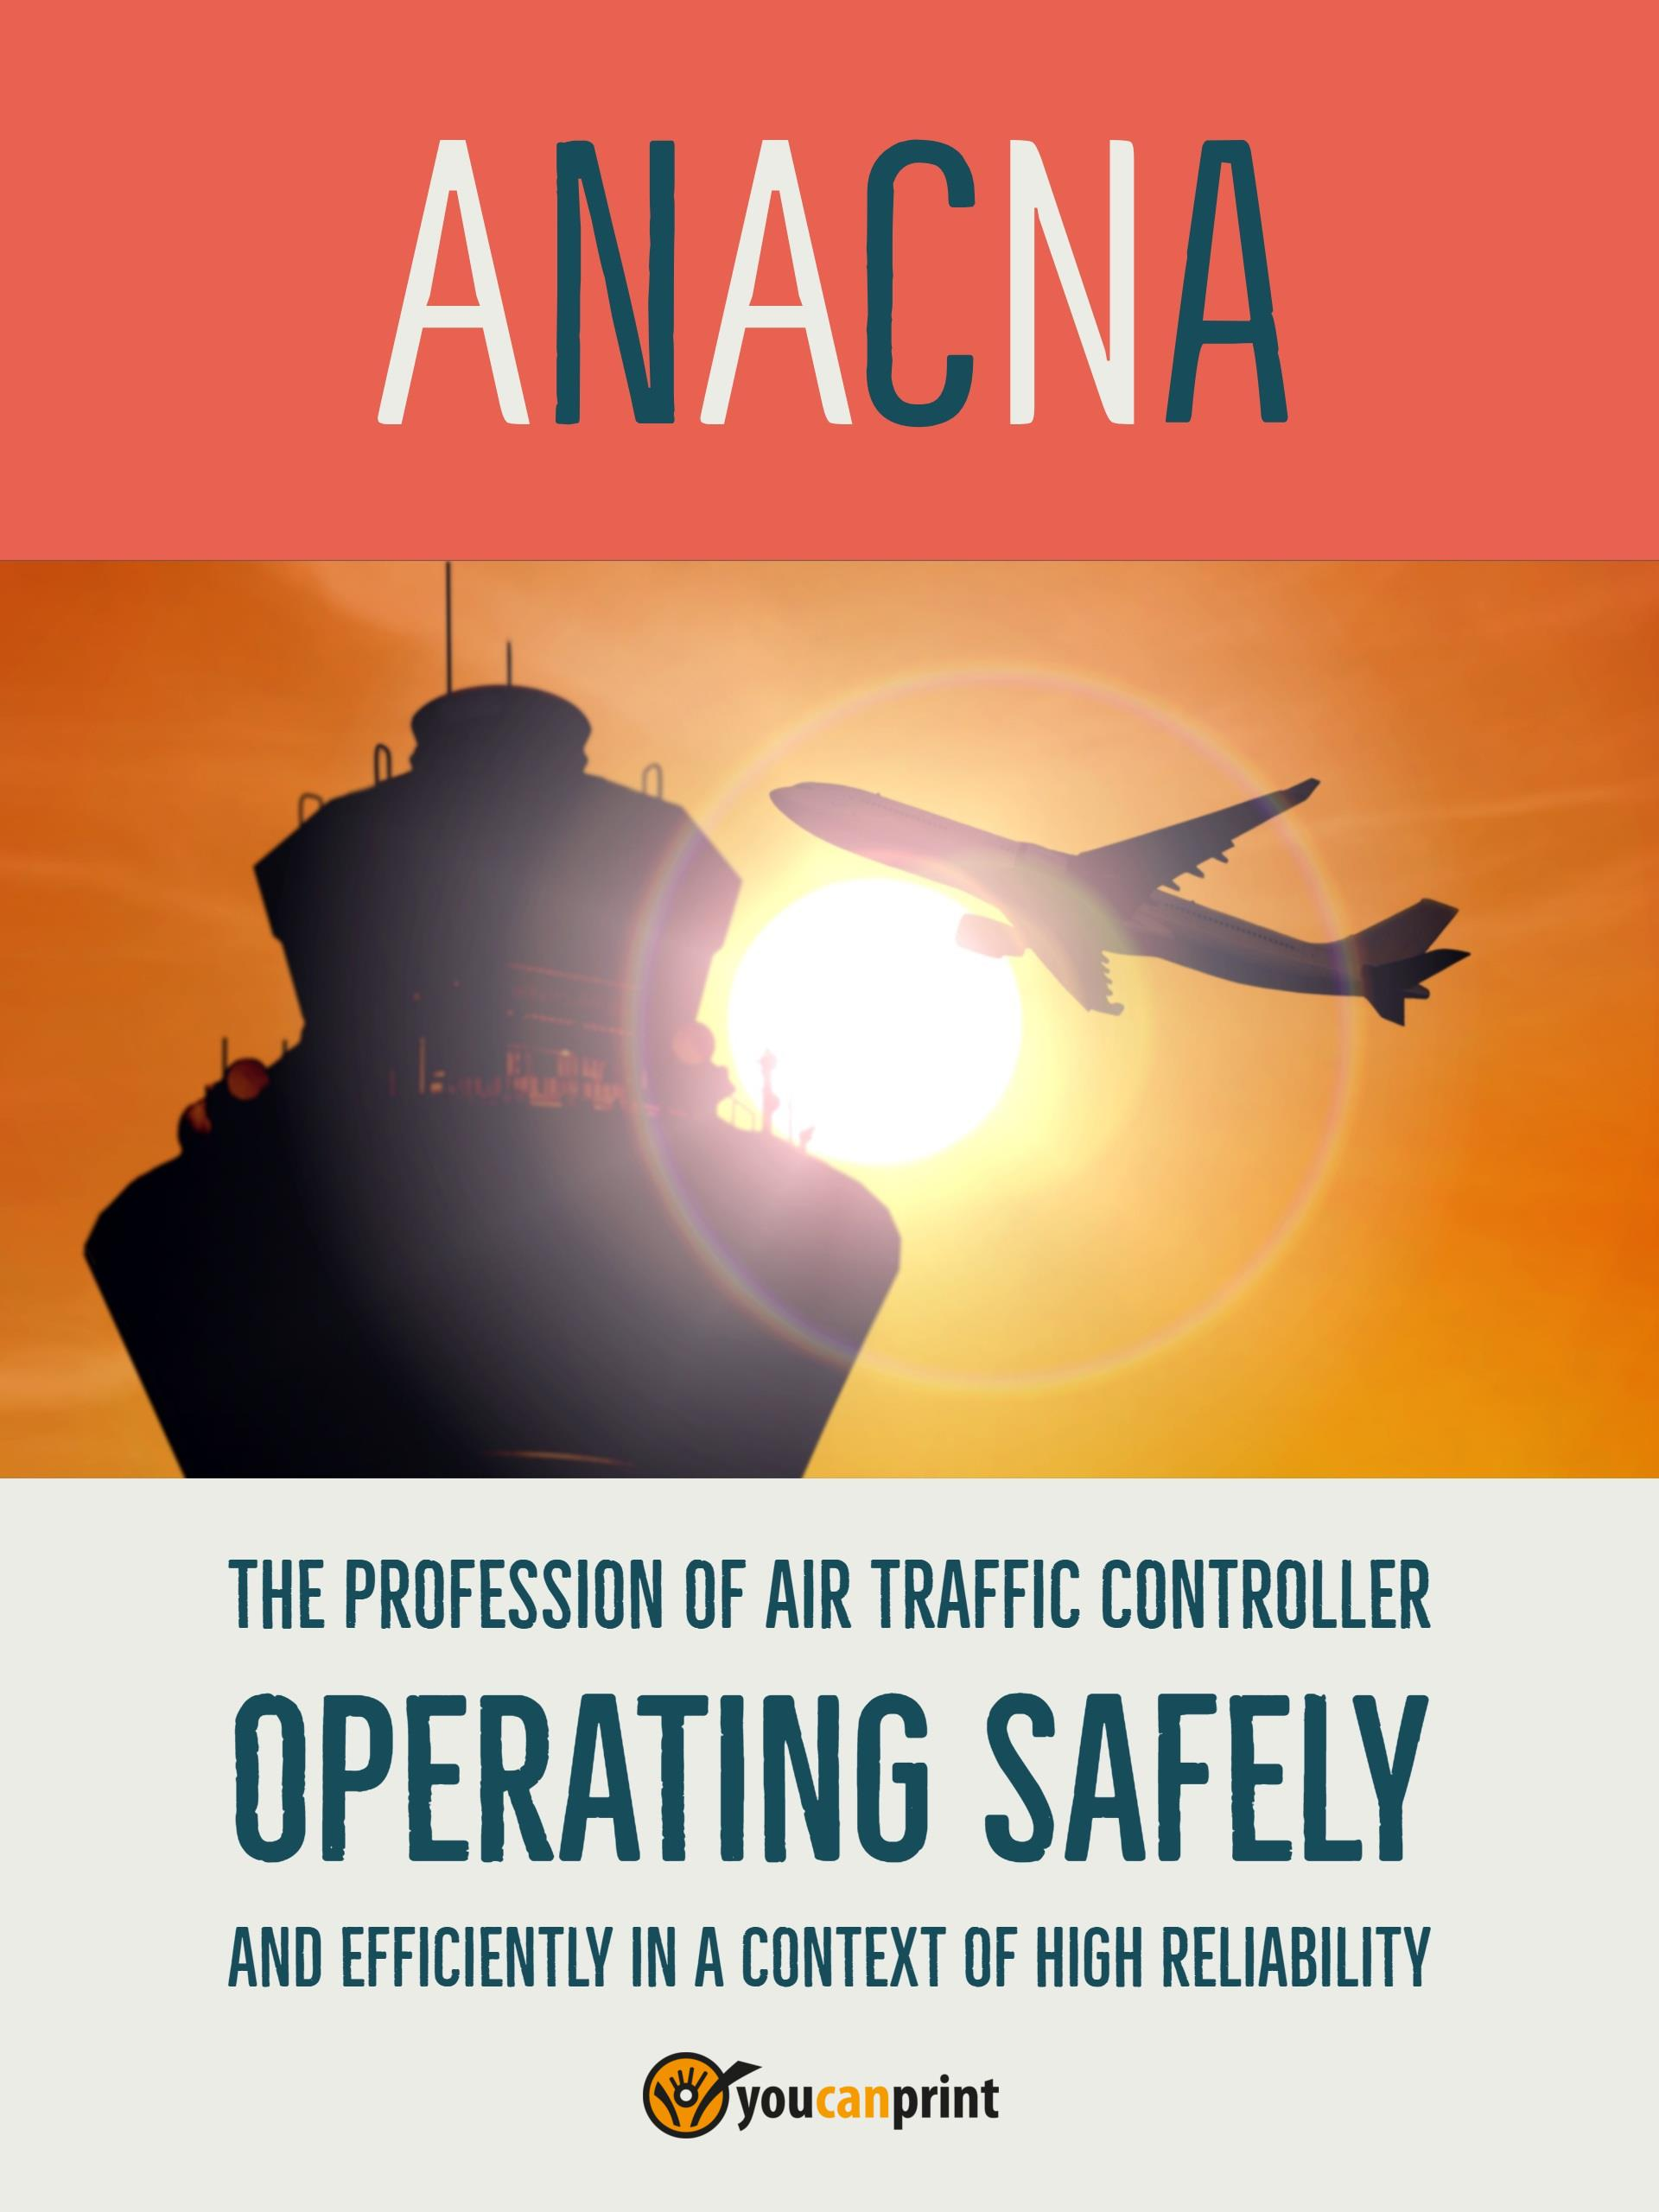 The profession of air traffic controller operating safely and efficiently in a context of high reliability